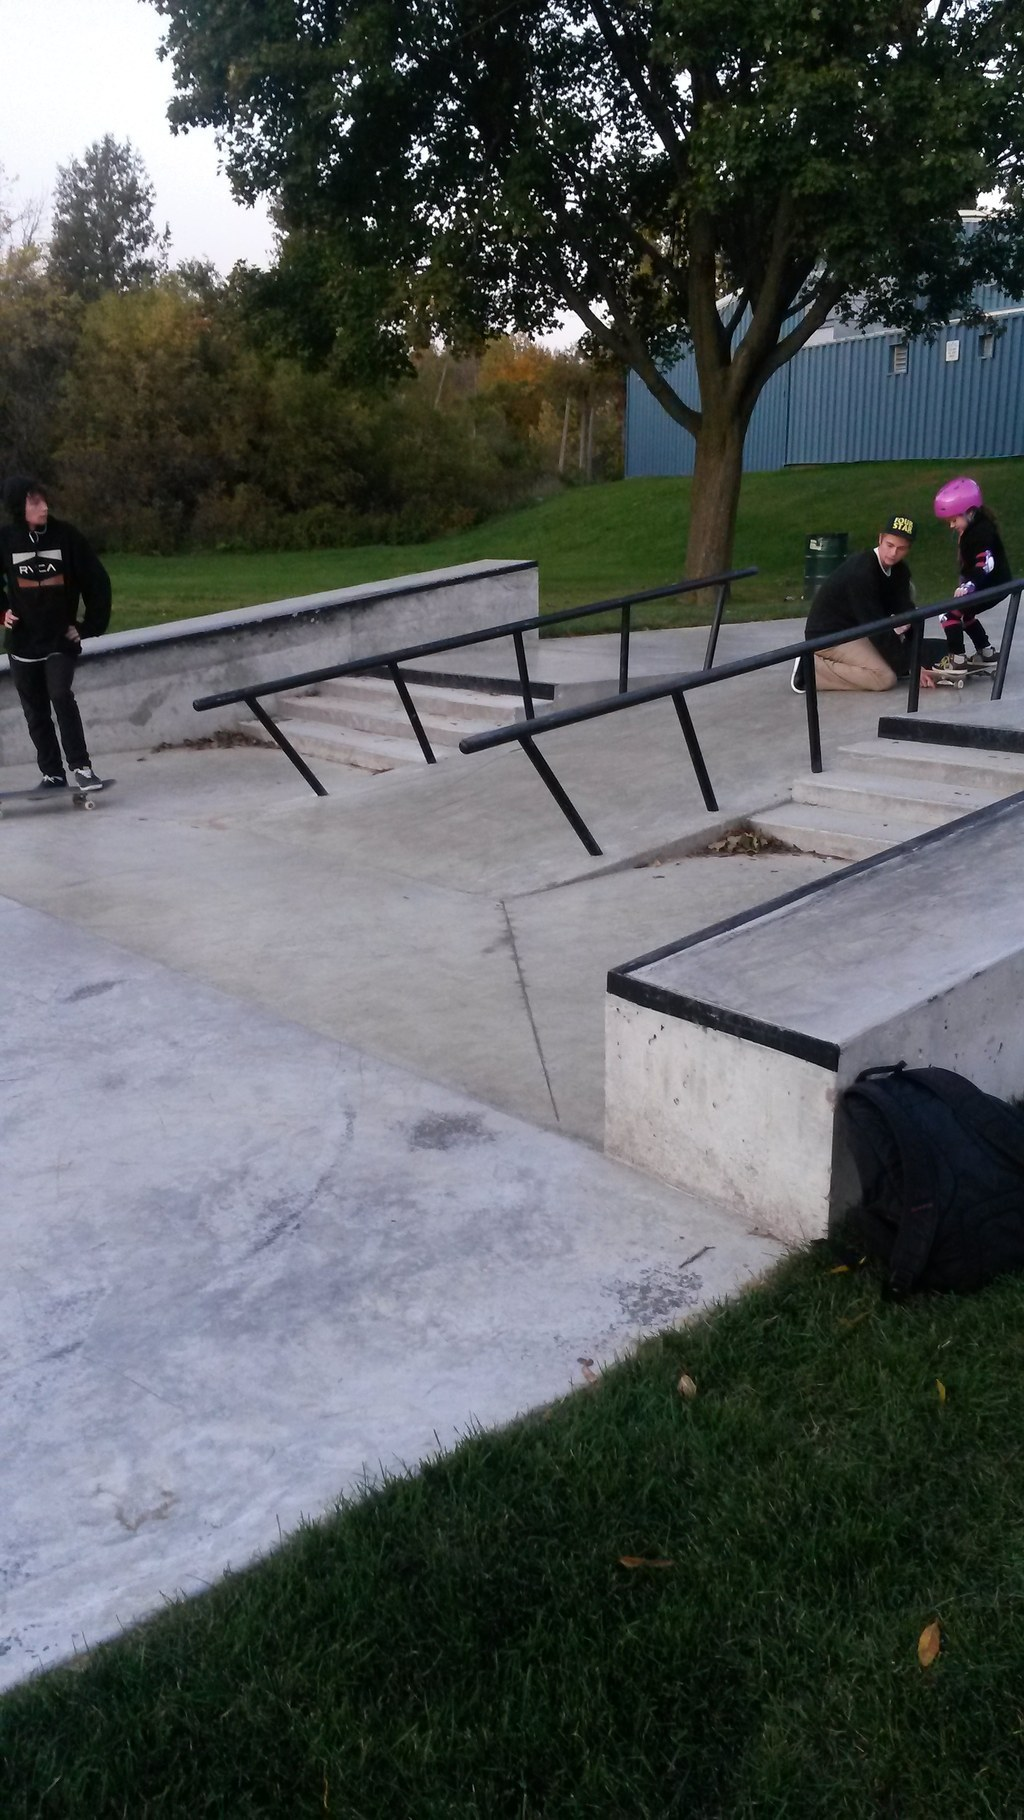 Mature teacher situation turnaround in the skatepark